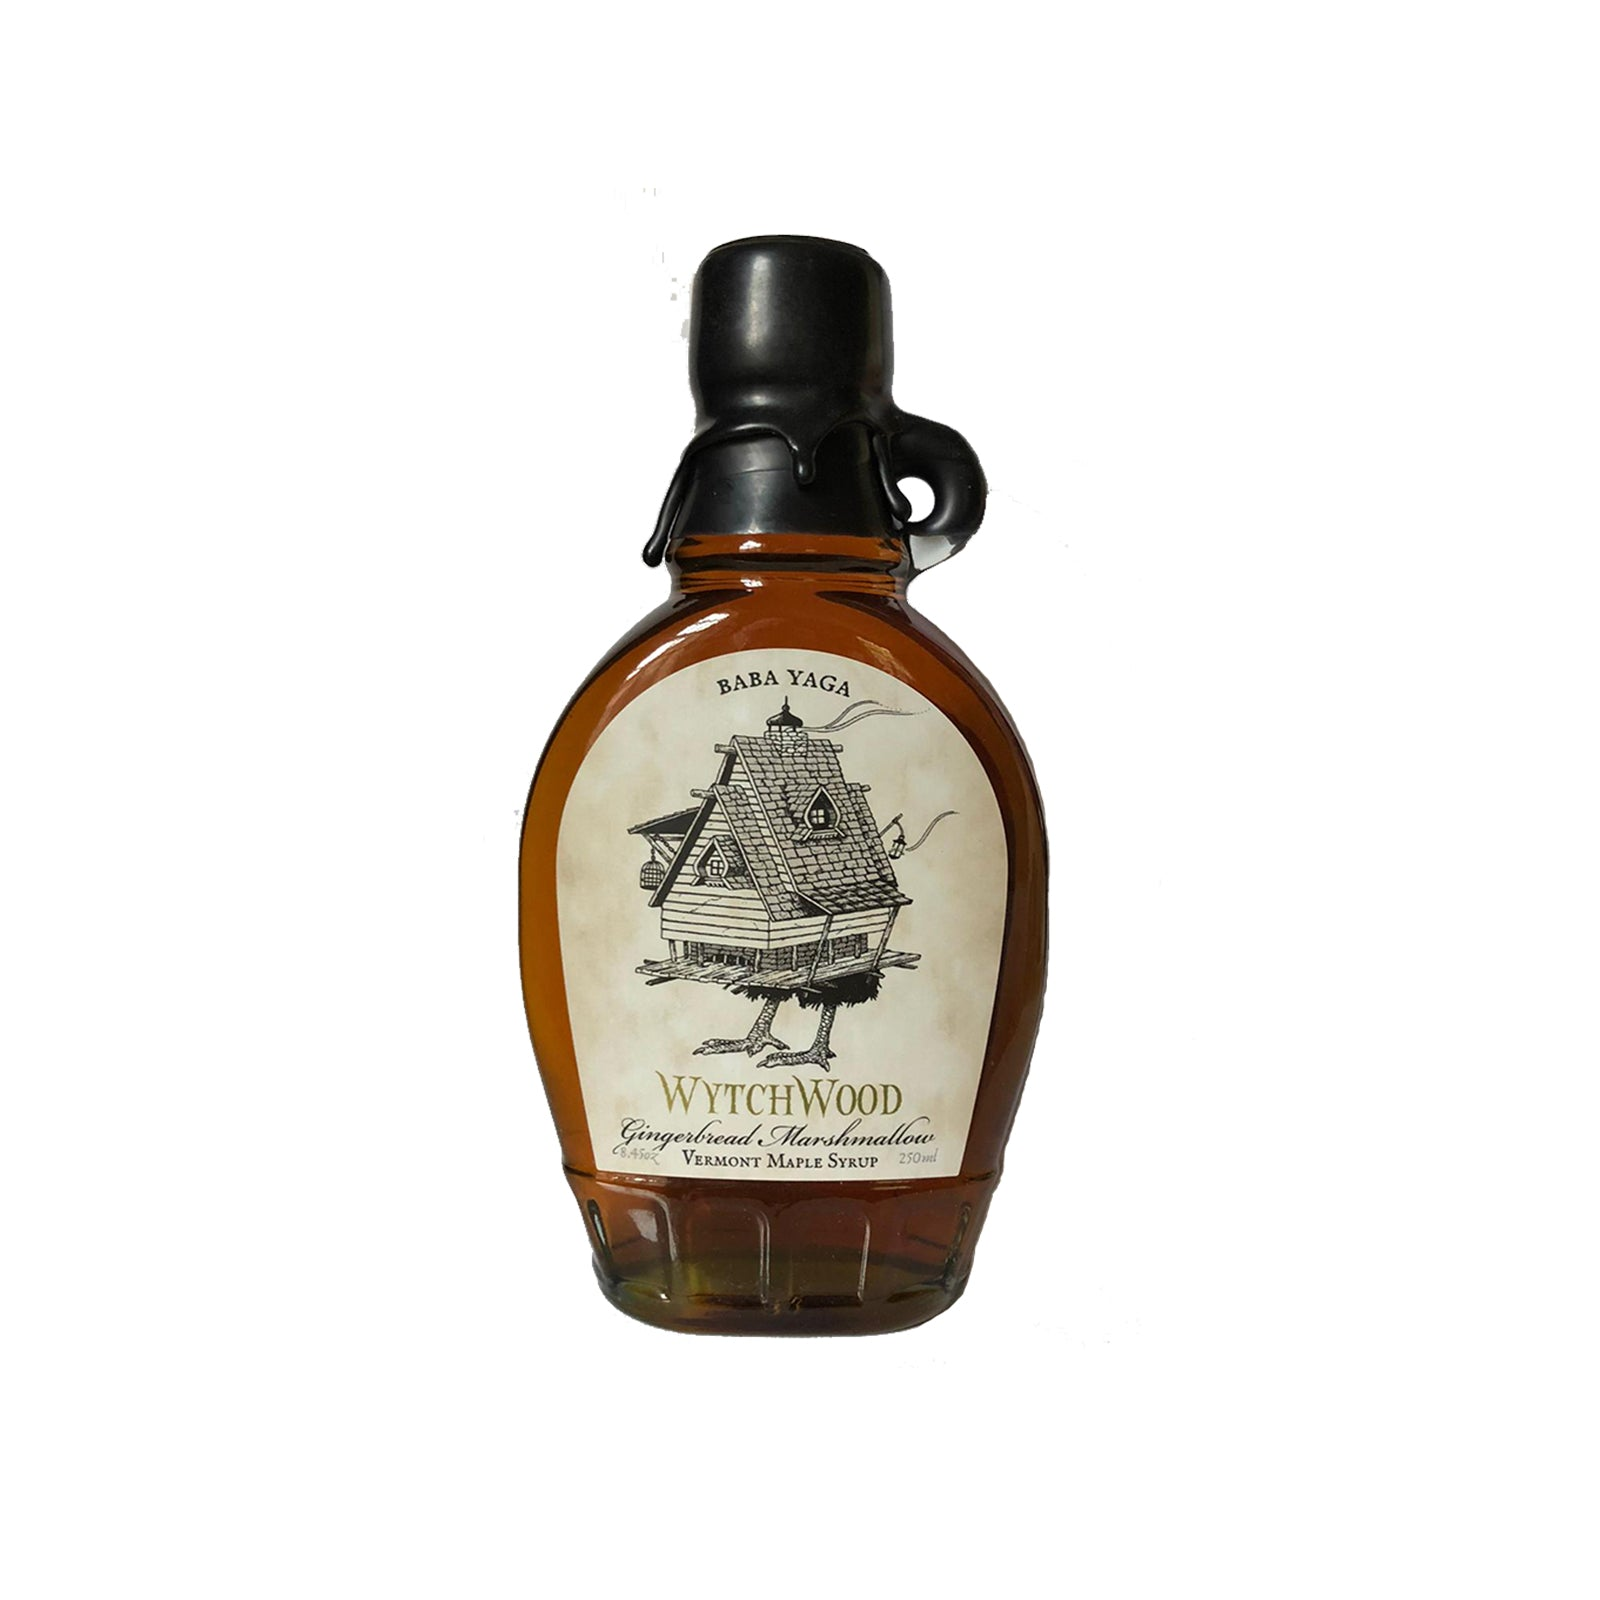 Gingerbread & Marshmallow Pure Vermont Maple Syrup